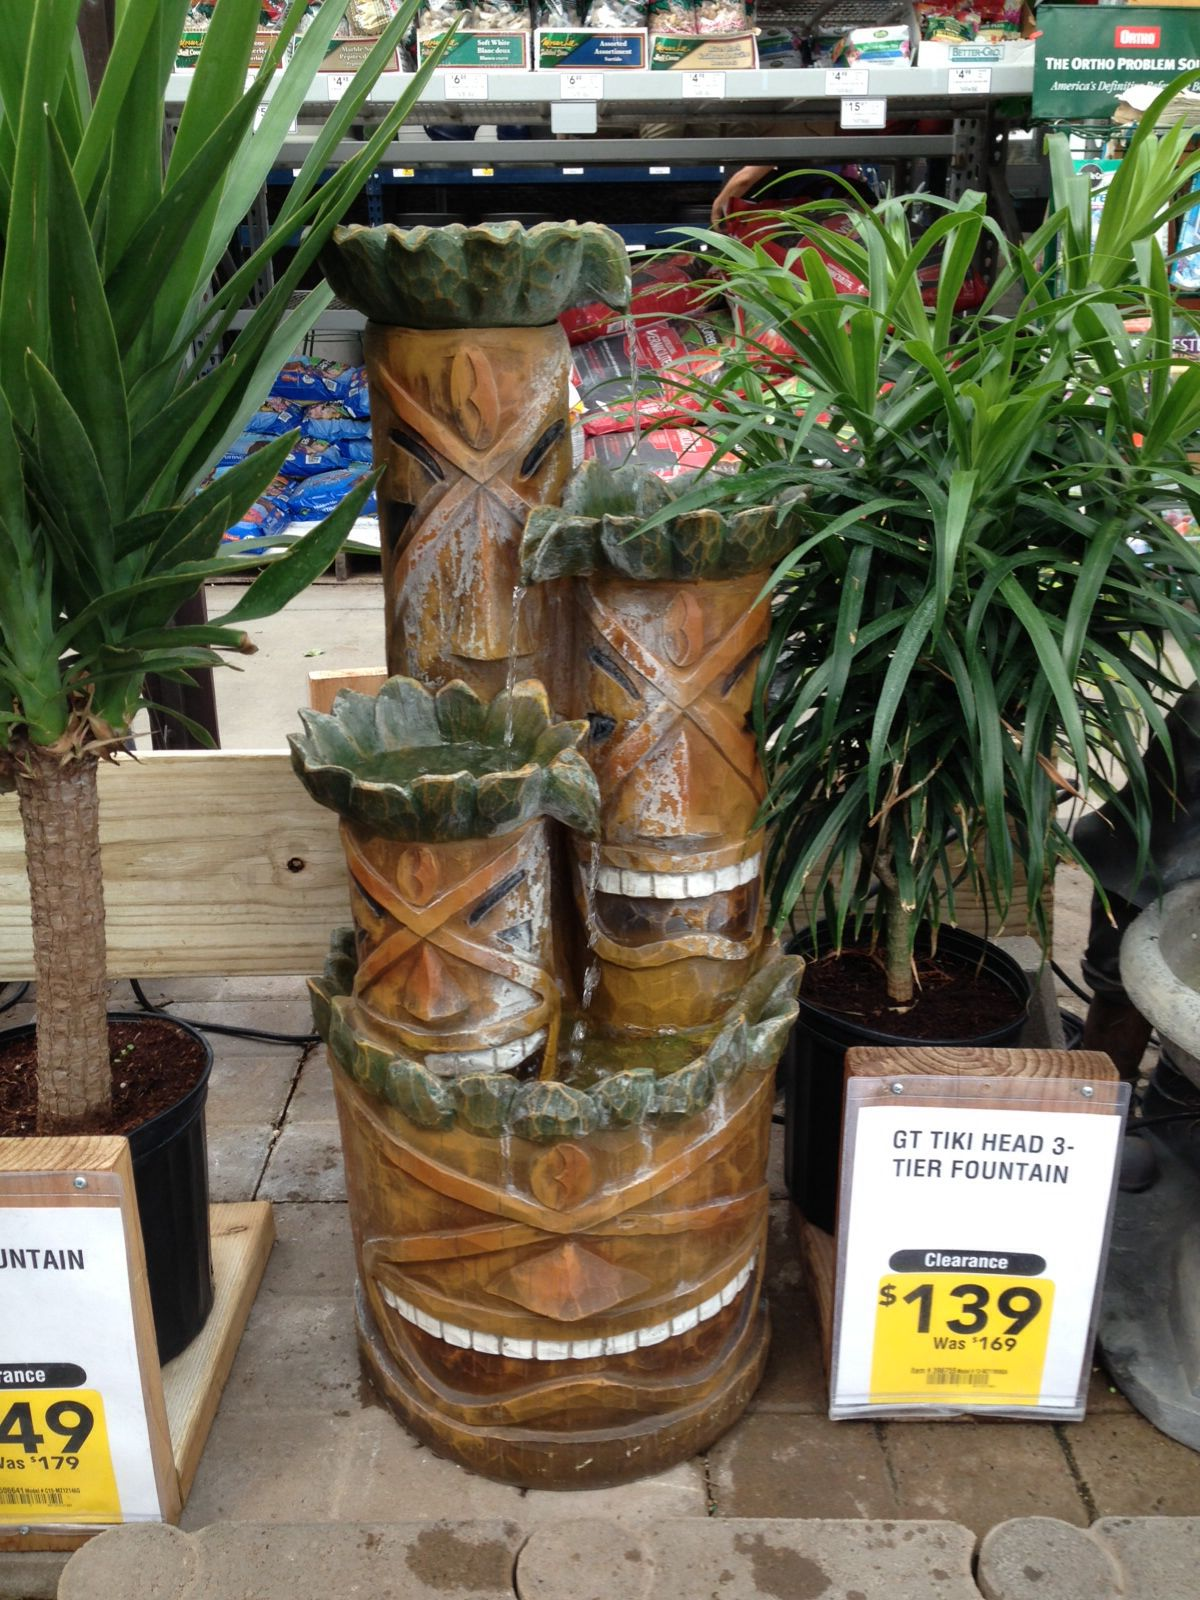 Tiki fountain at Lowes | Backyard ideas in 2019 | Tiki room, Room